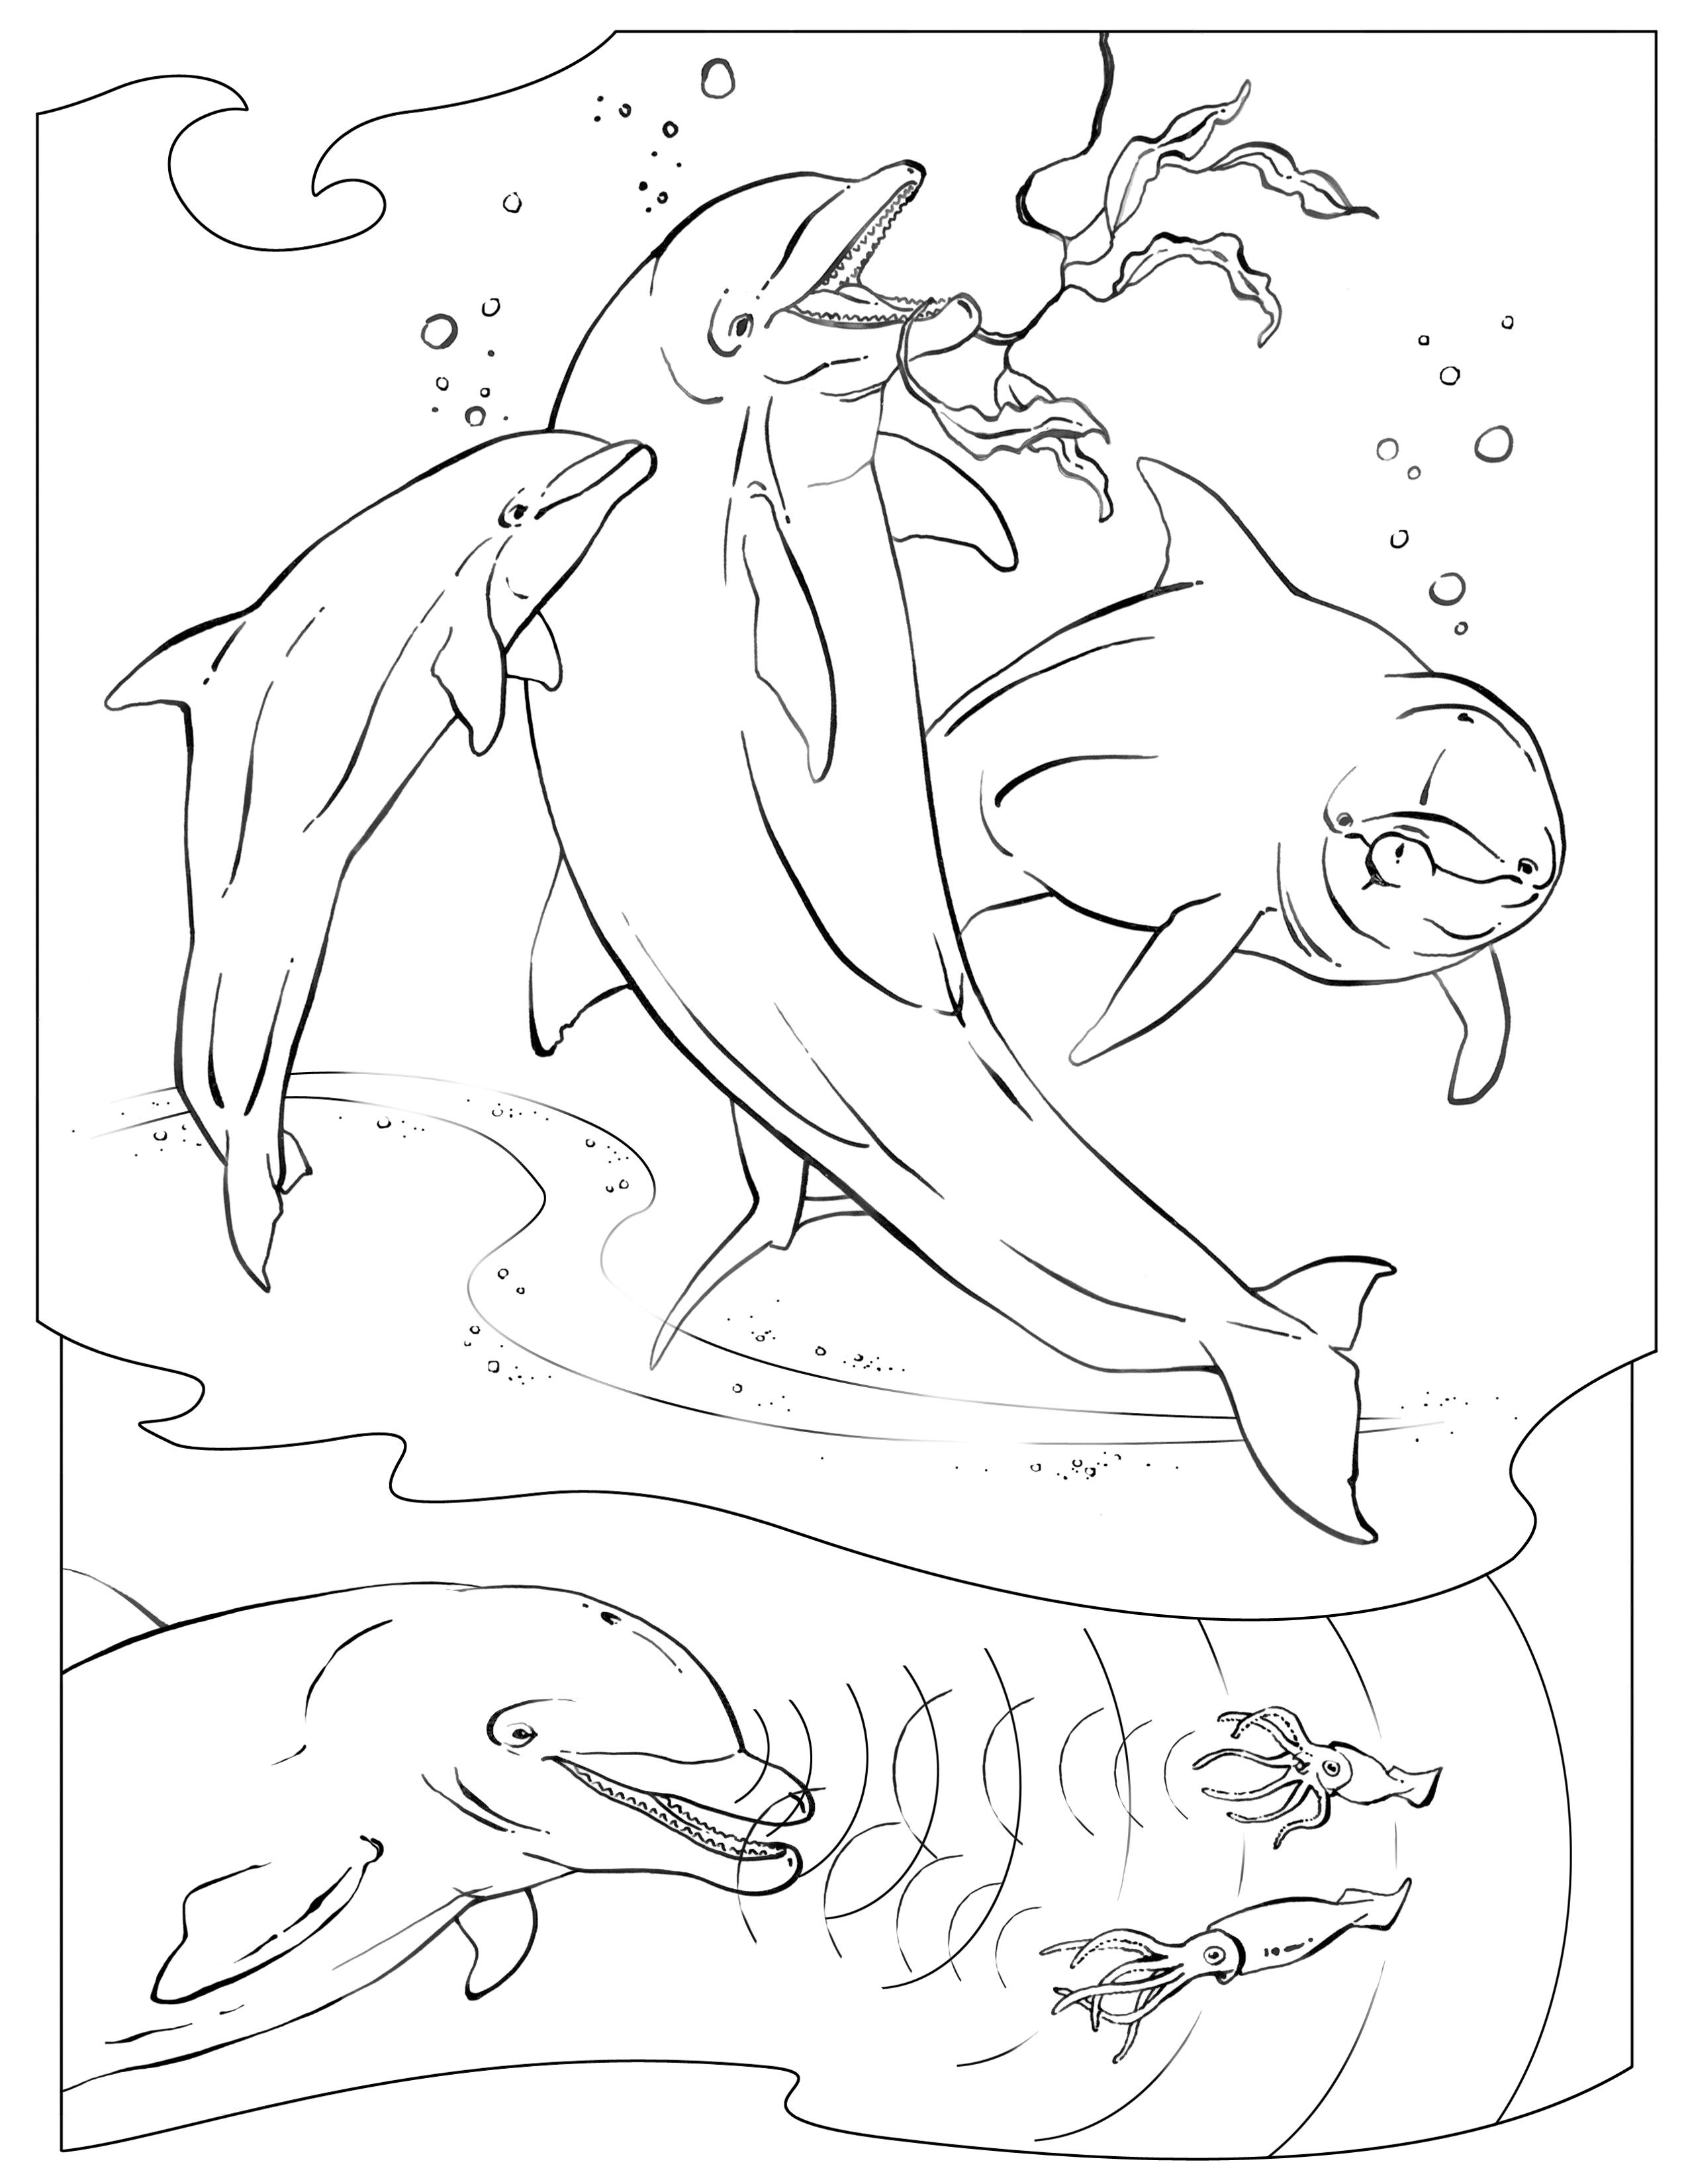 Dolphins Drawing Pictures at GetDrawings.com   Free for personal use ...